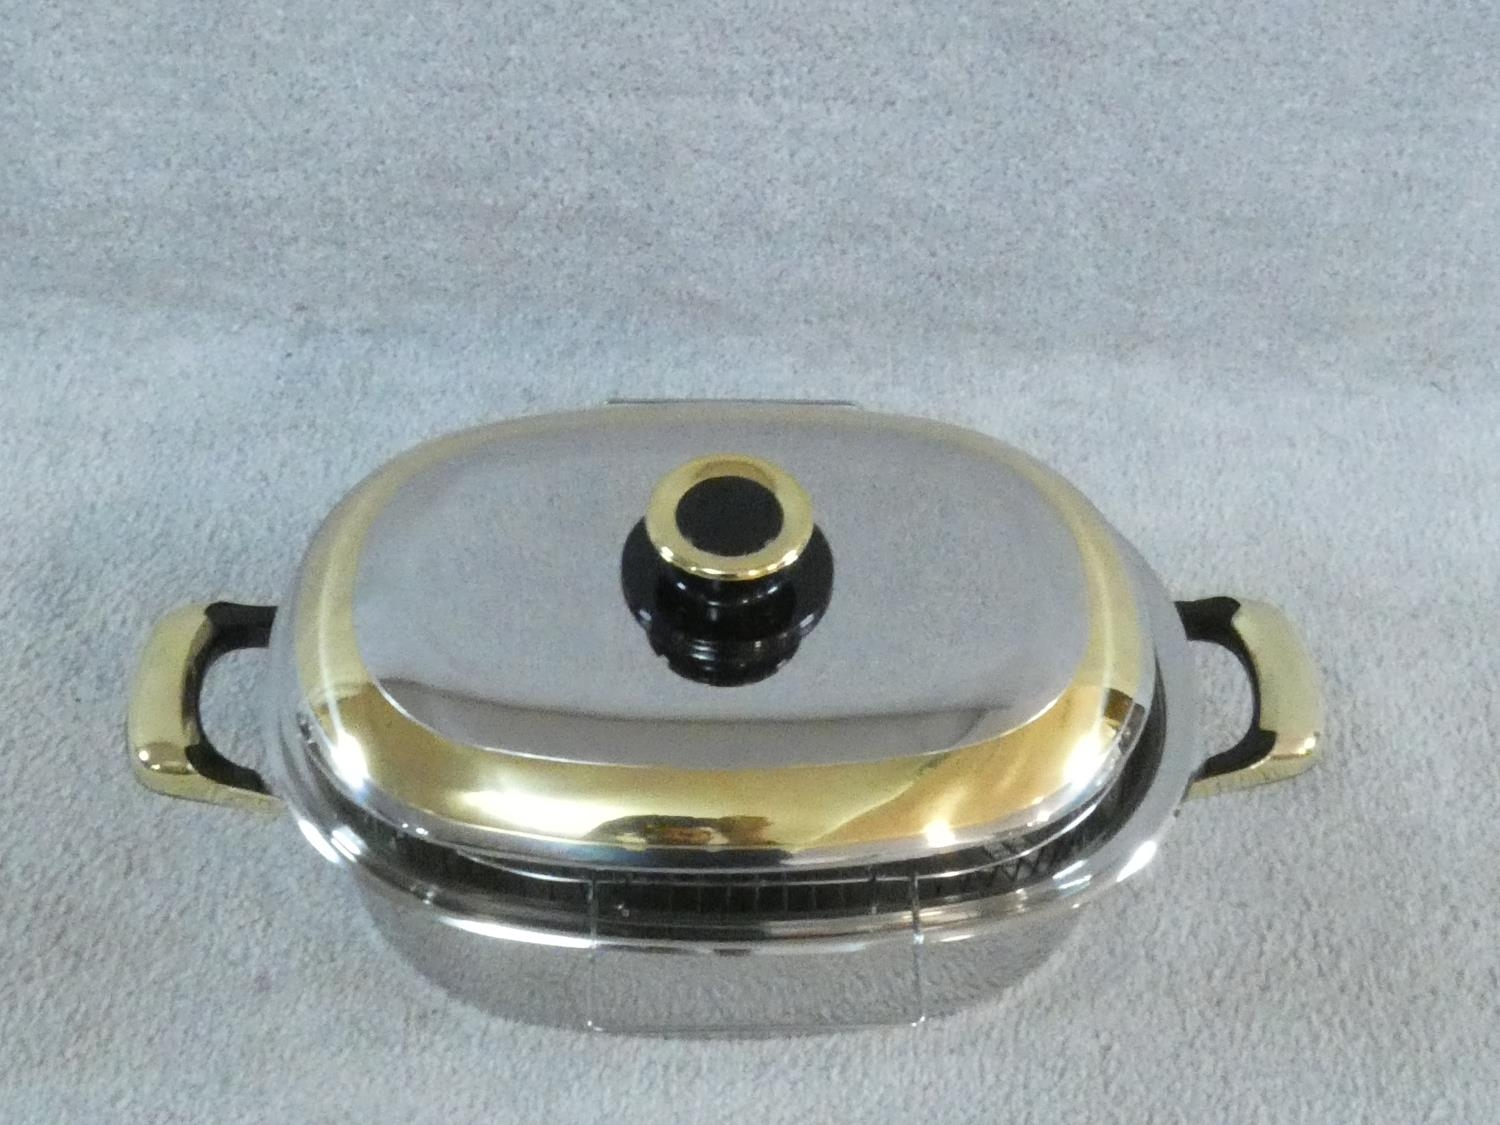 A set of boxed stainless steel as new Cameo Royale pans and cookware with 24k gold plated - Image 11 of 22